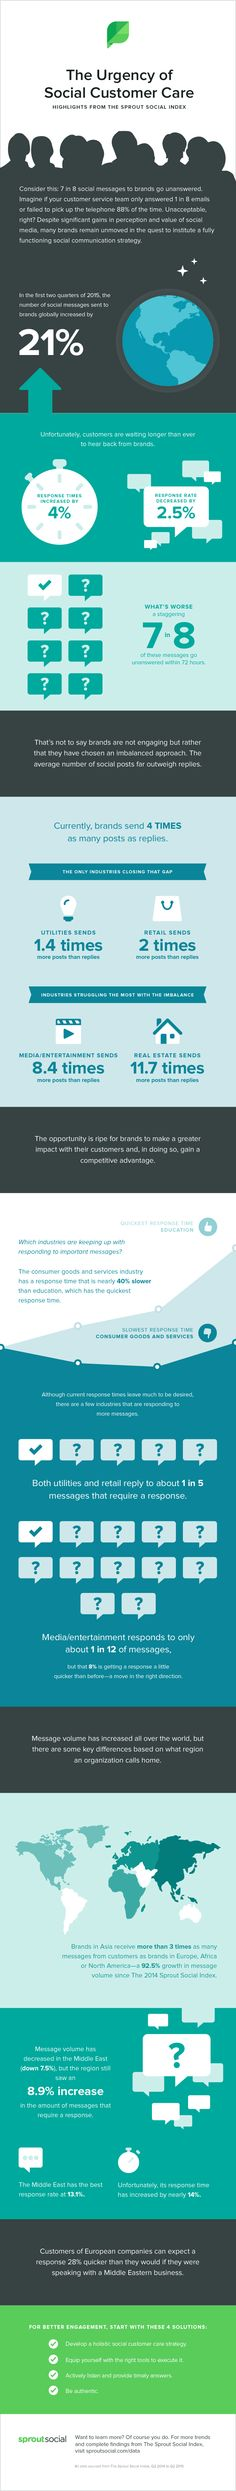 The Urgency Of Social Media Customer Care: Highlights From The 2015 Sprout Social Index - infographic